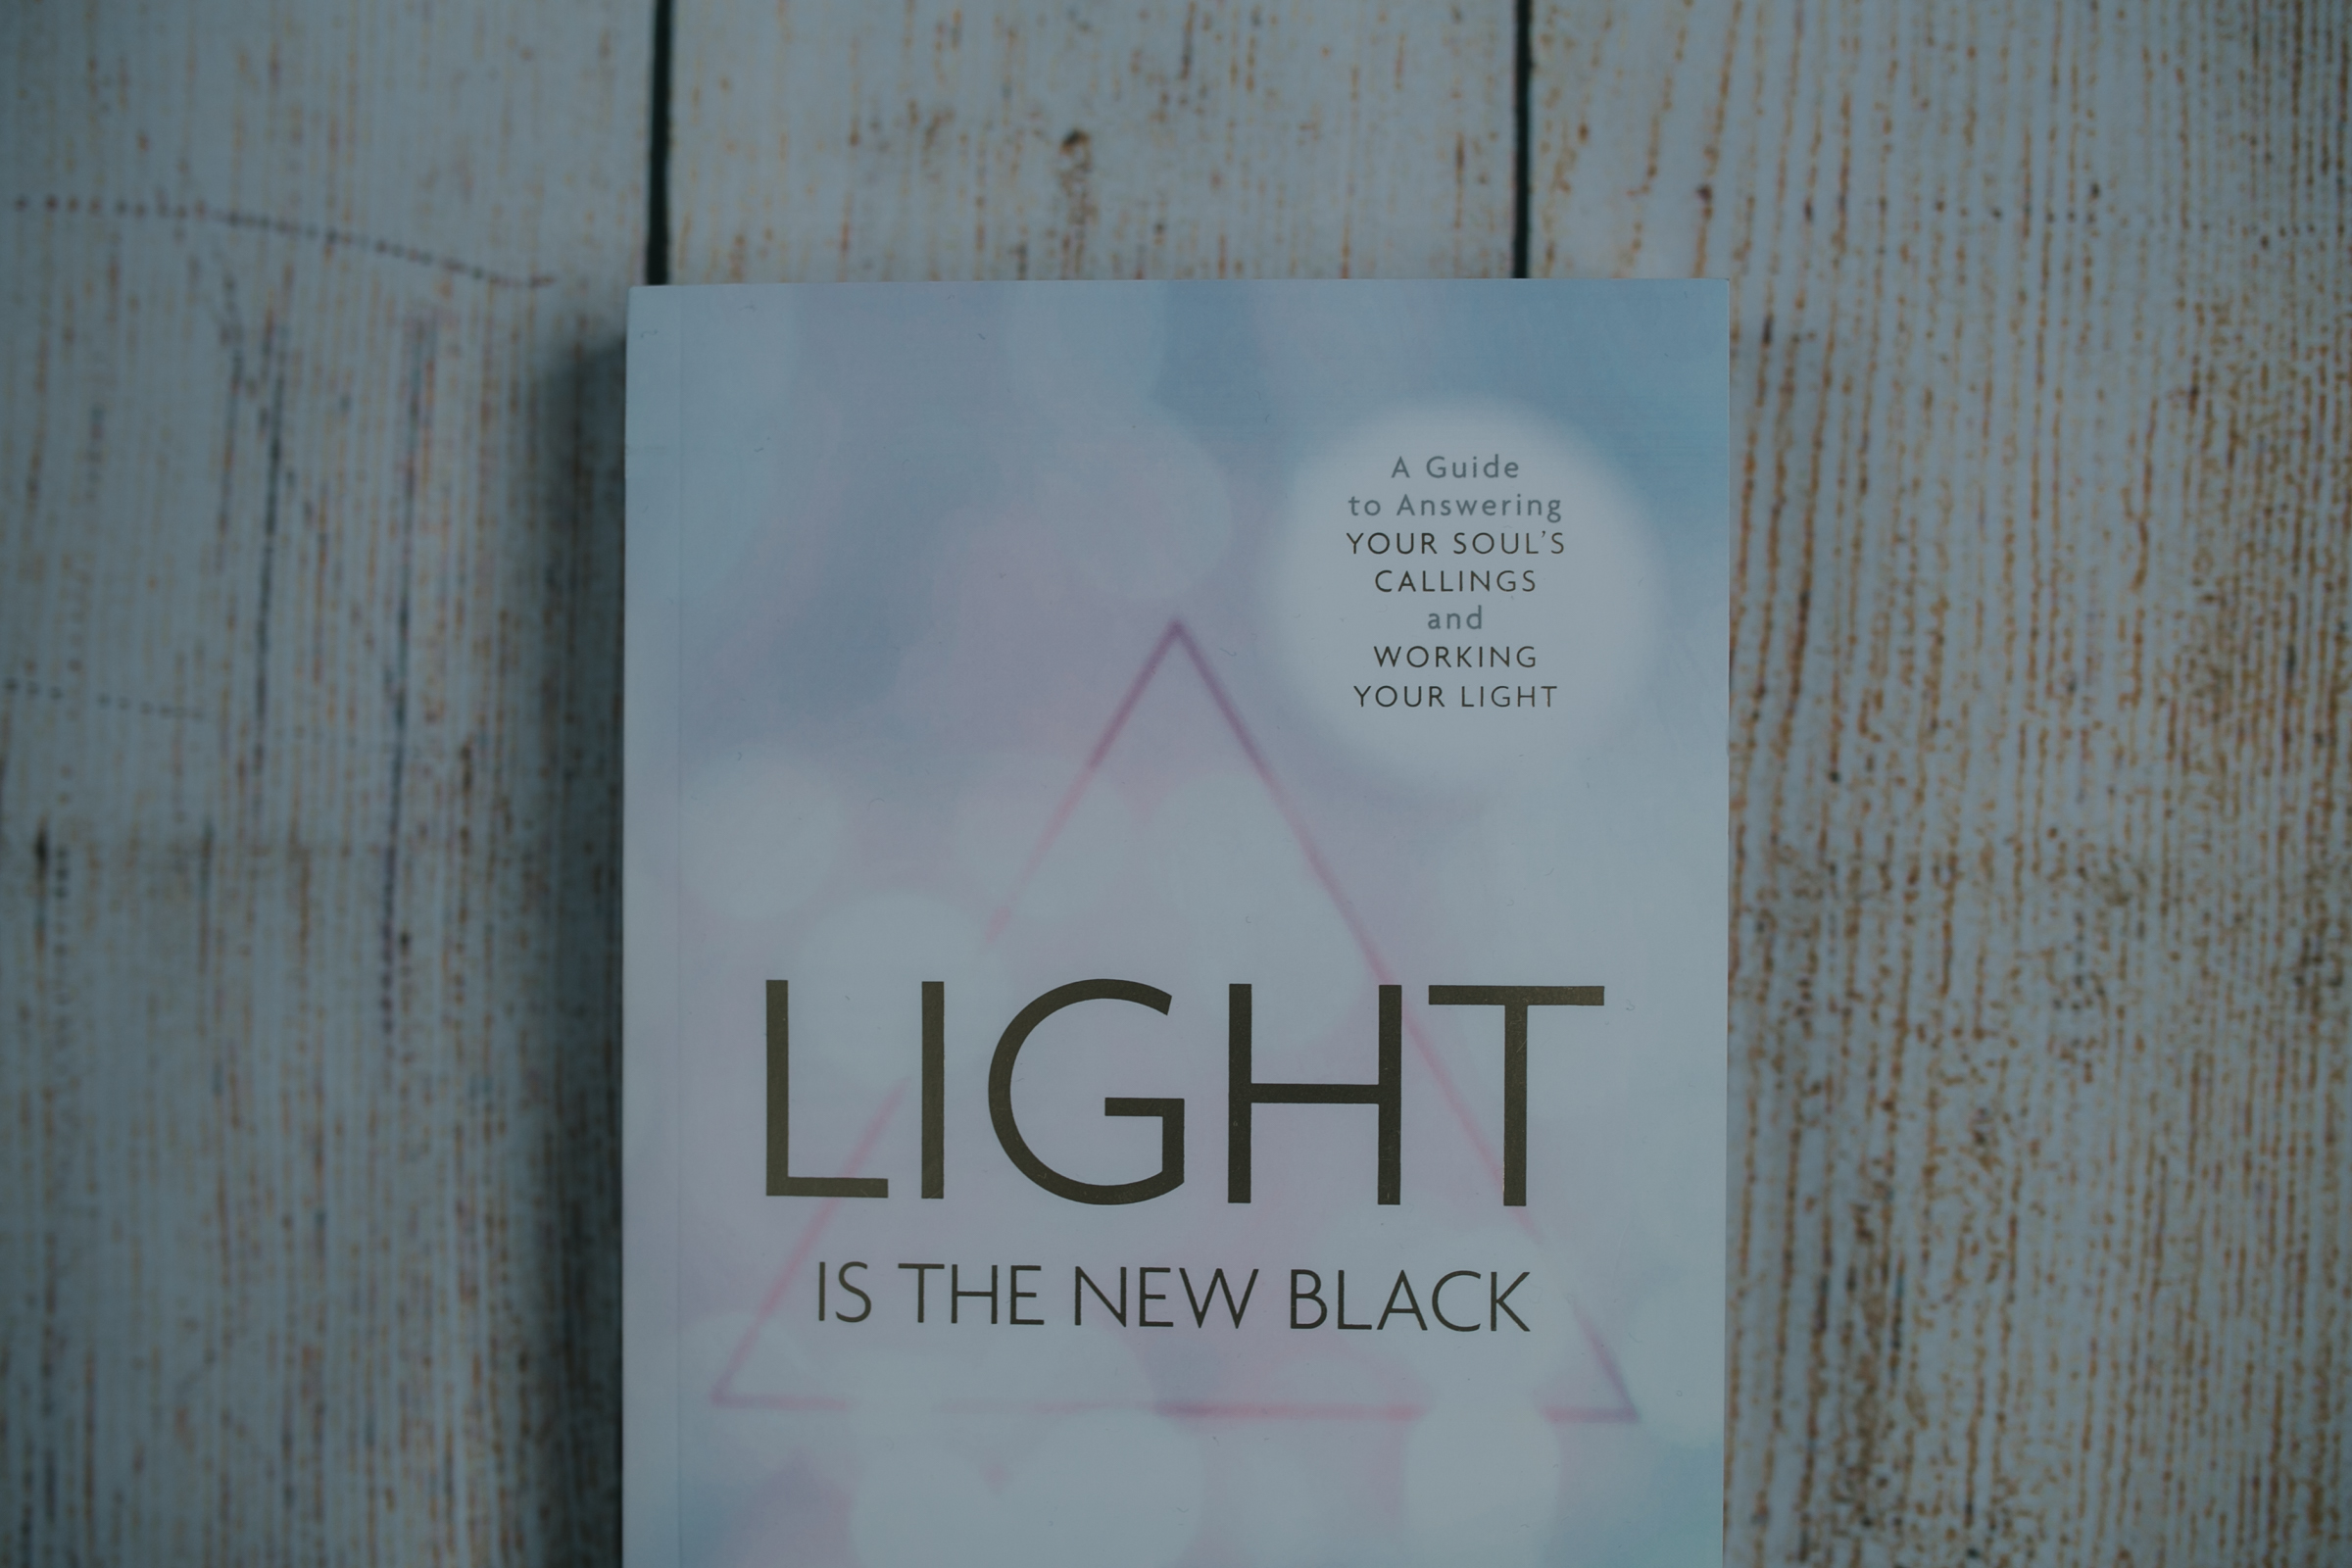 best-book-to-read-book-review-light-is-the-new-black-rebecca-campbell-minas-planet-london-photographer-jasmina-haskovic6.jpg